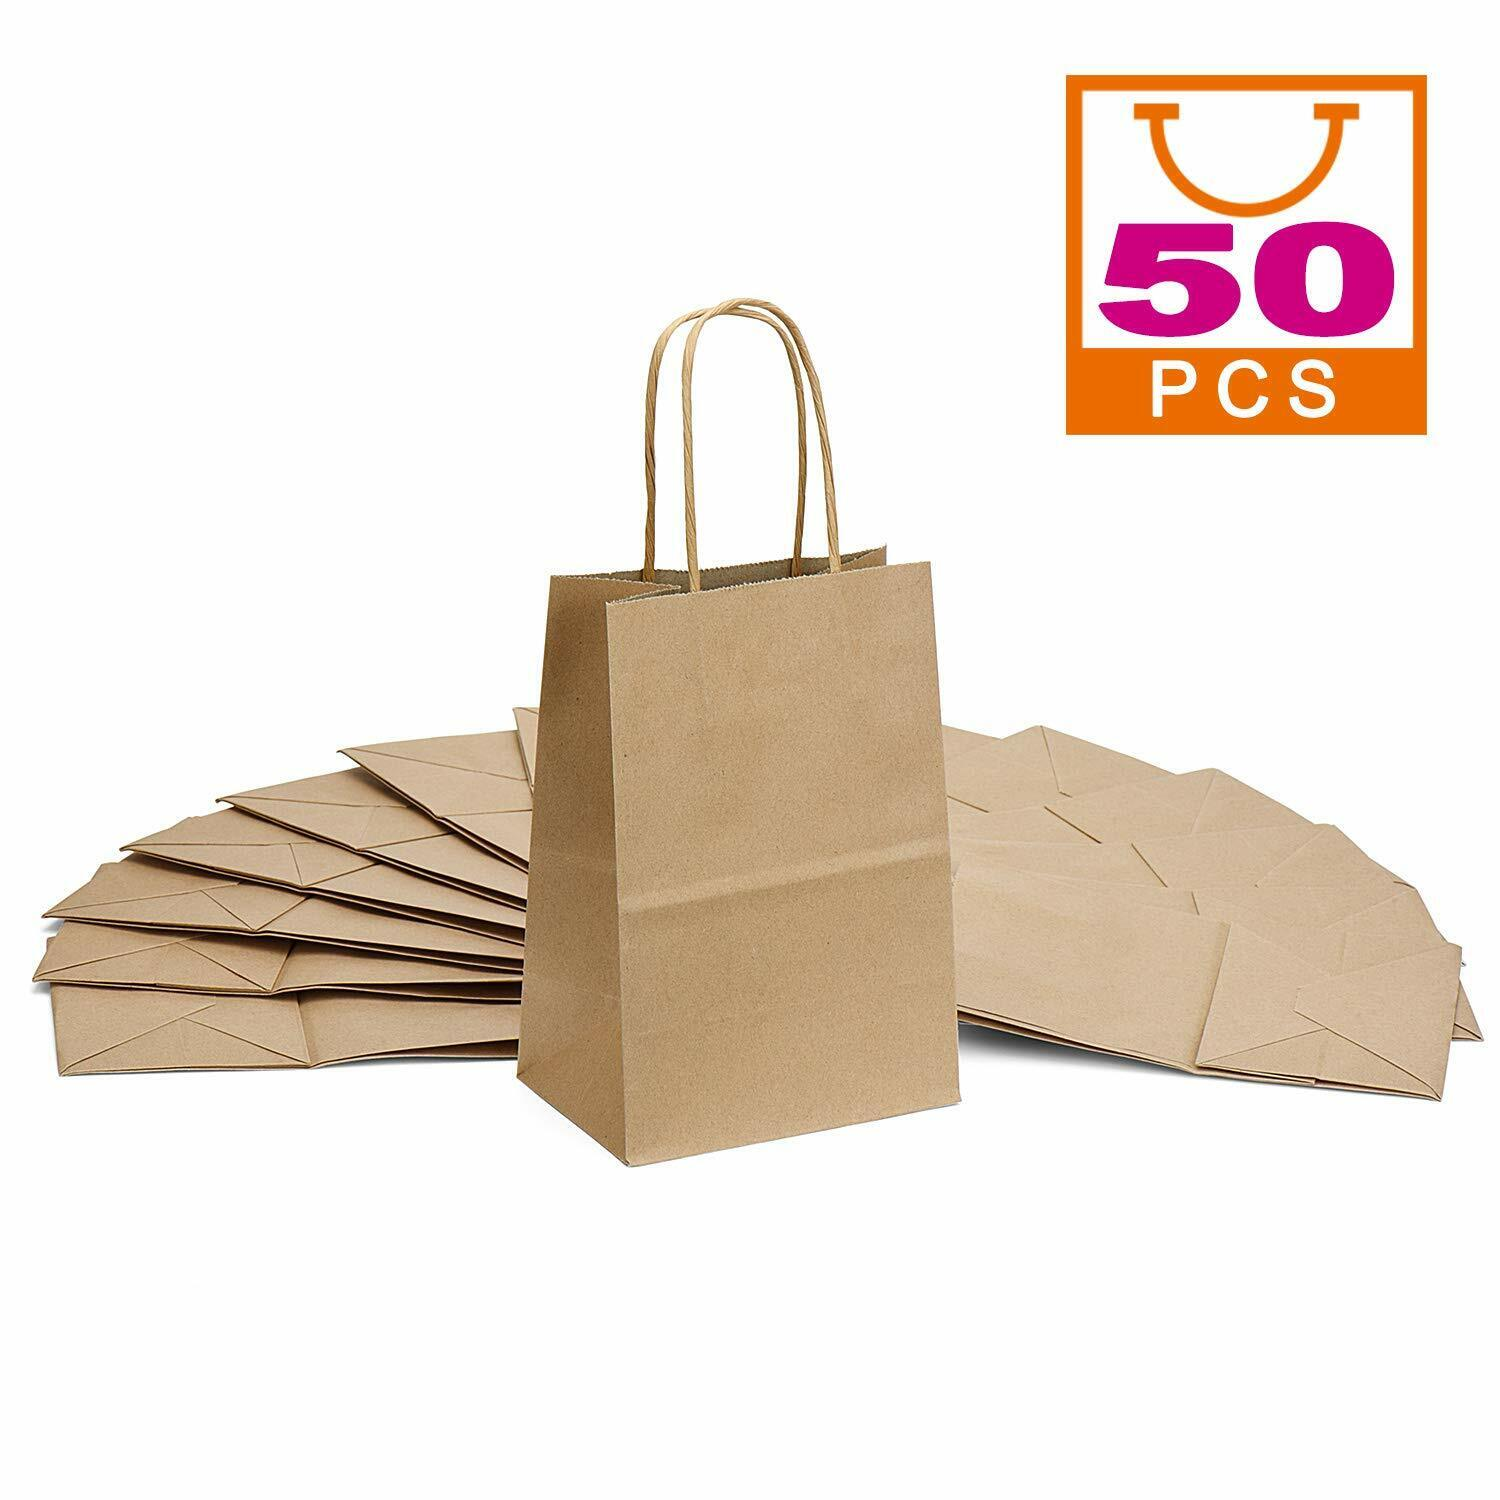 200 pcs 4 X 6 Brown Kraft Paper Bags for Candy Gift Bags Merchandise Crafts Party Favors Cookies Jewelry